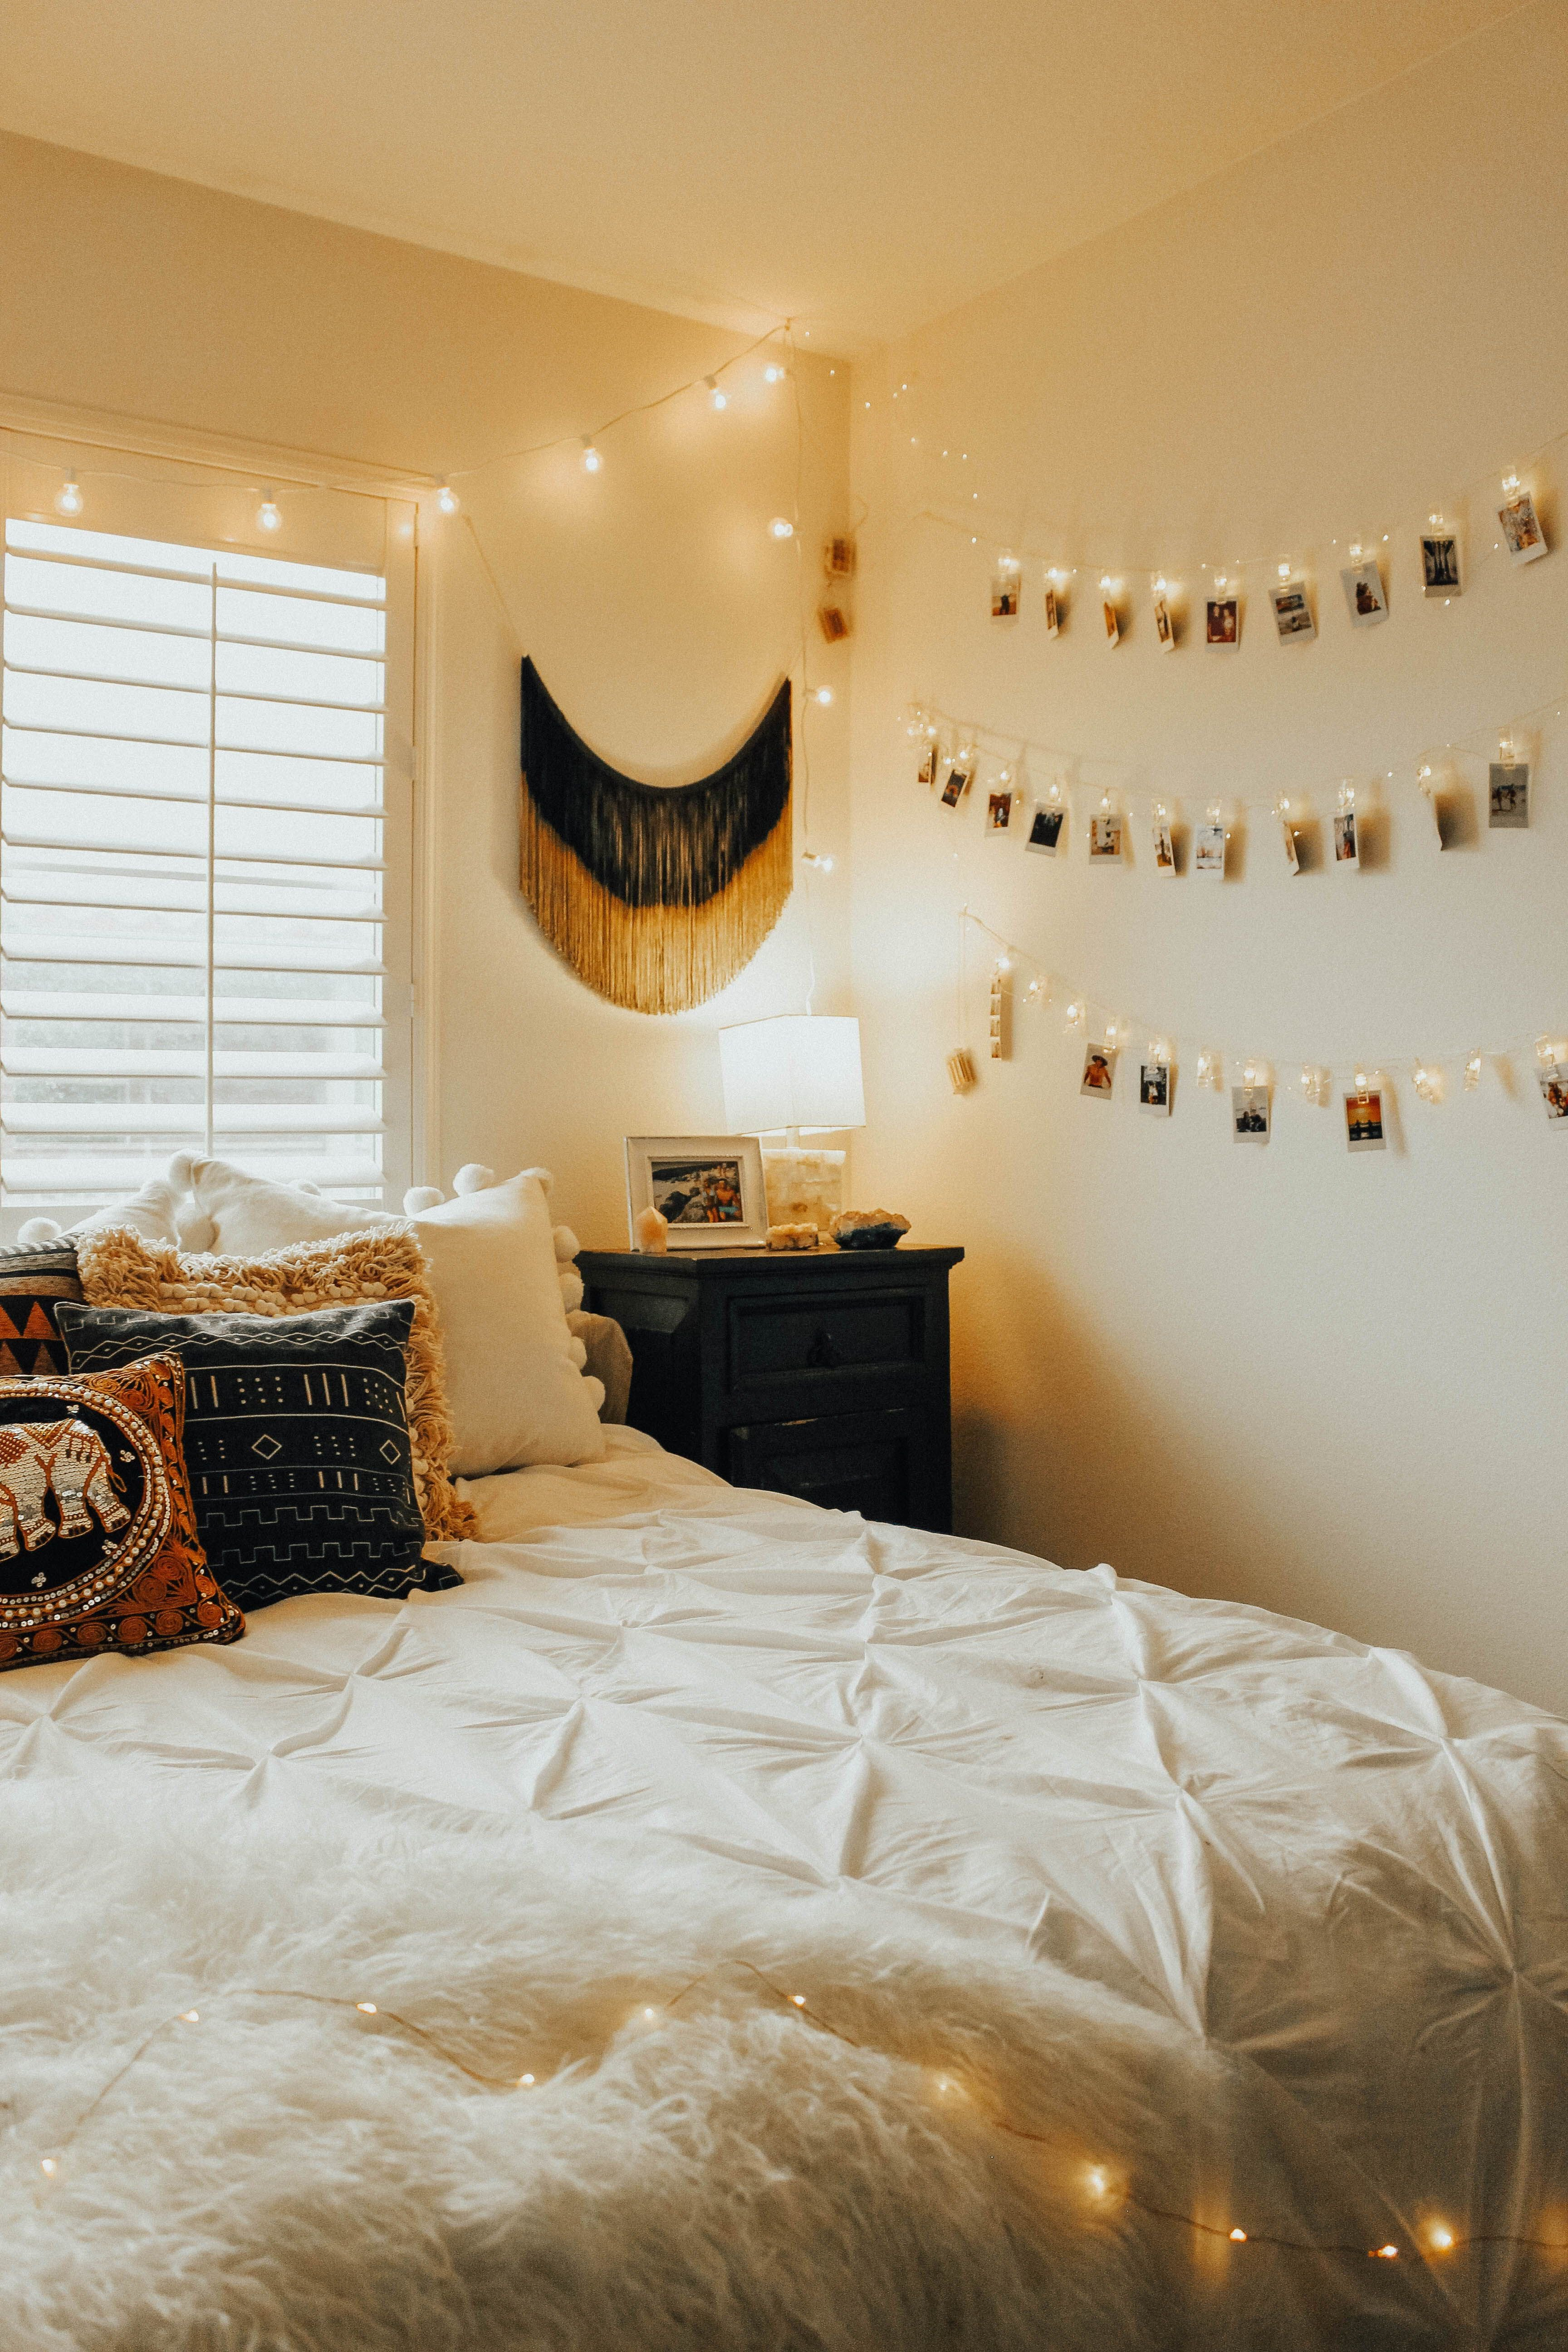 Best String Light for Bedroom Luxury Pin On Home ☀︎